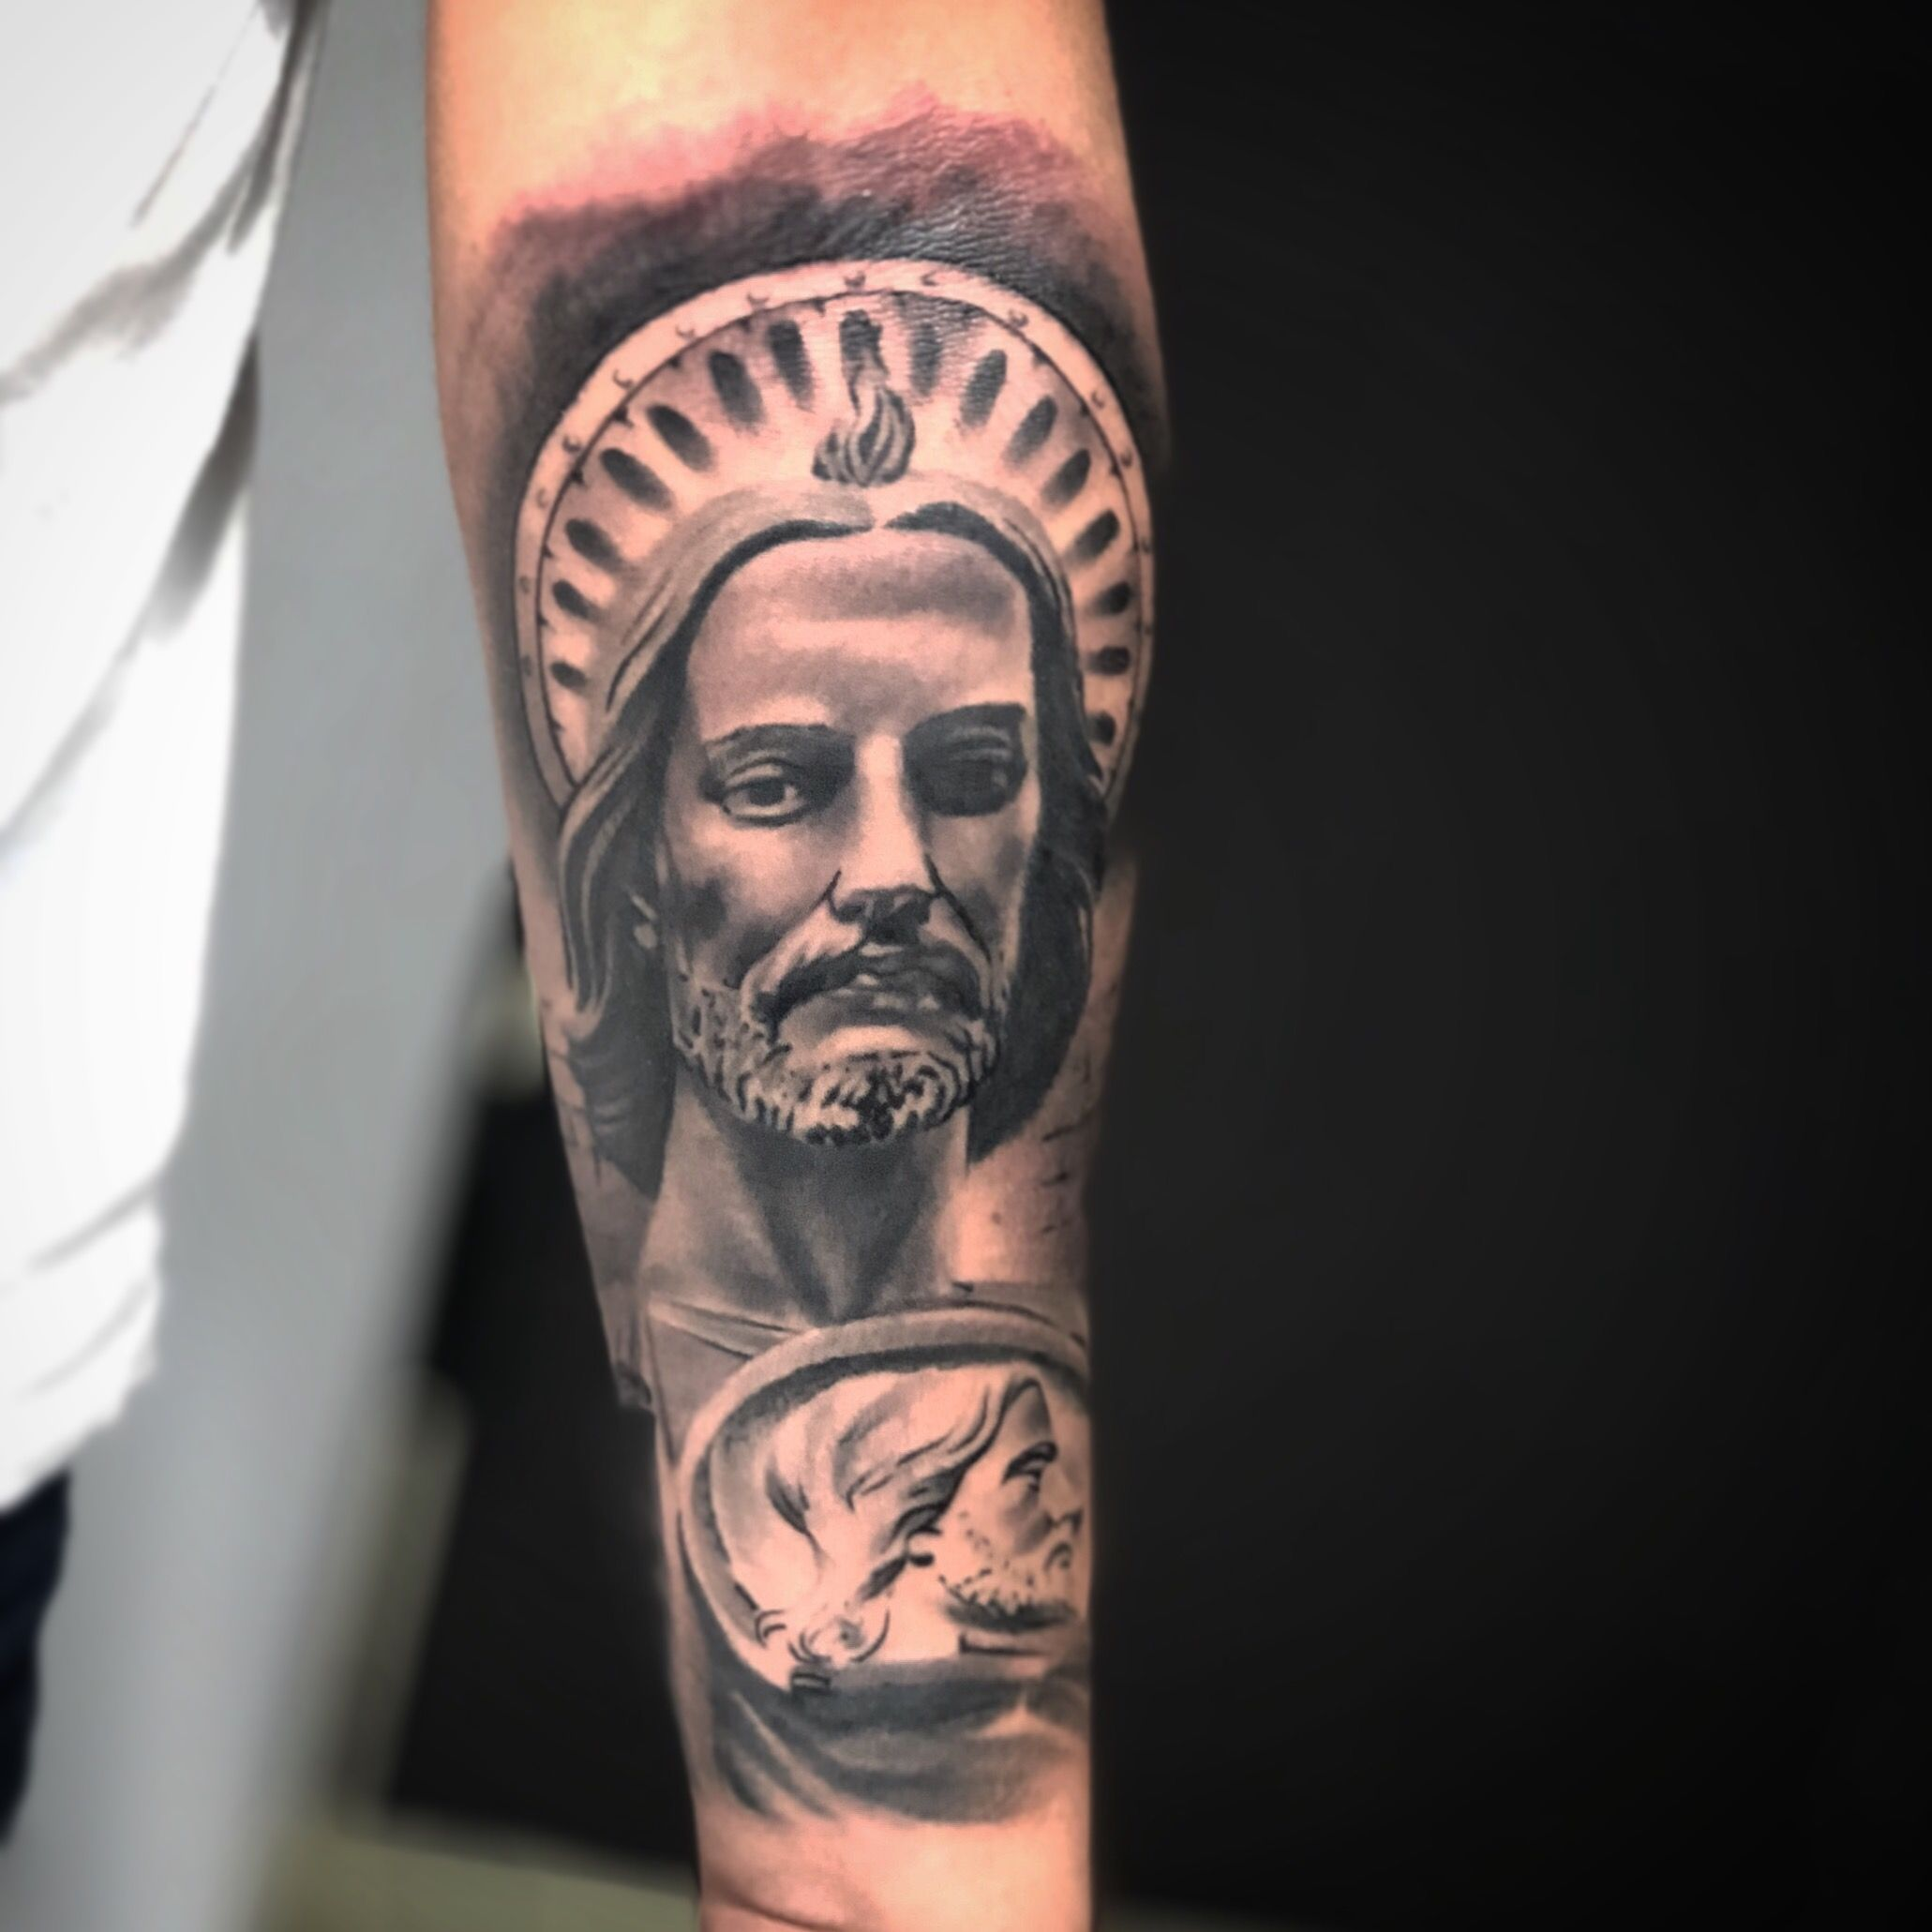 San Judas Tadeo México At Jhonathantattoo Tattoos Tatuajes Coronas